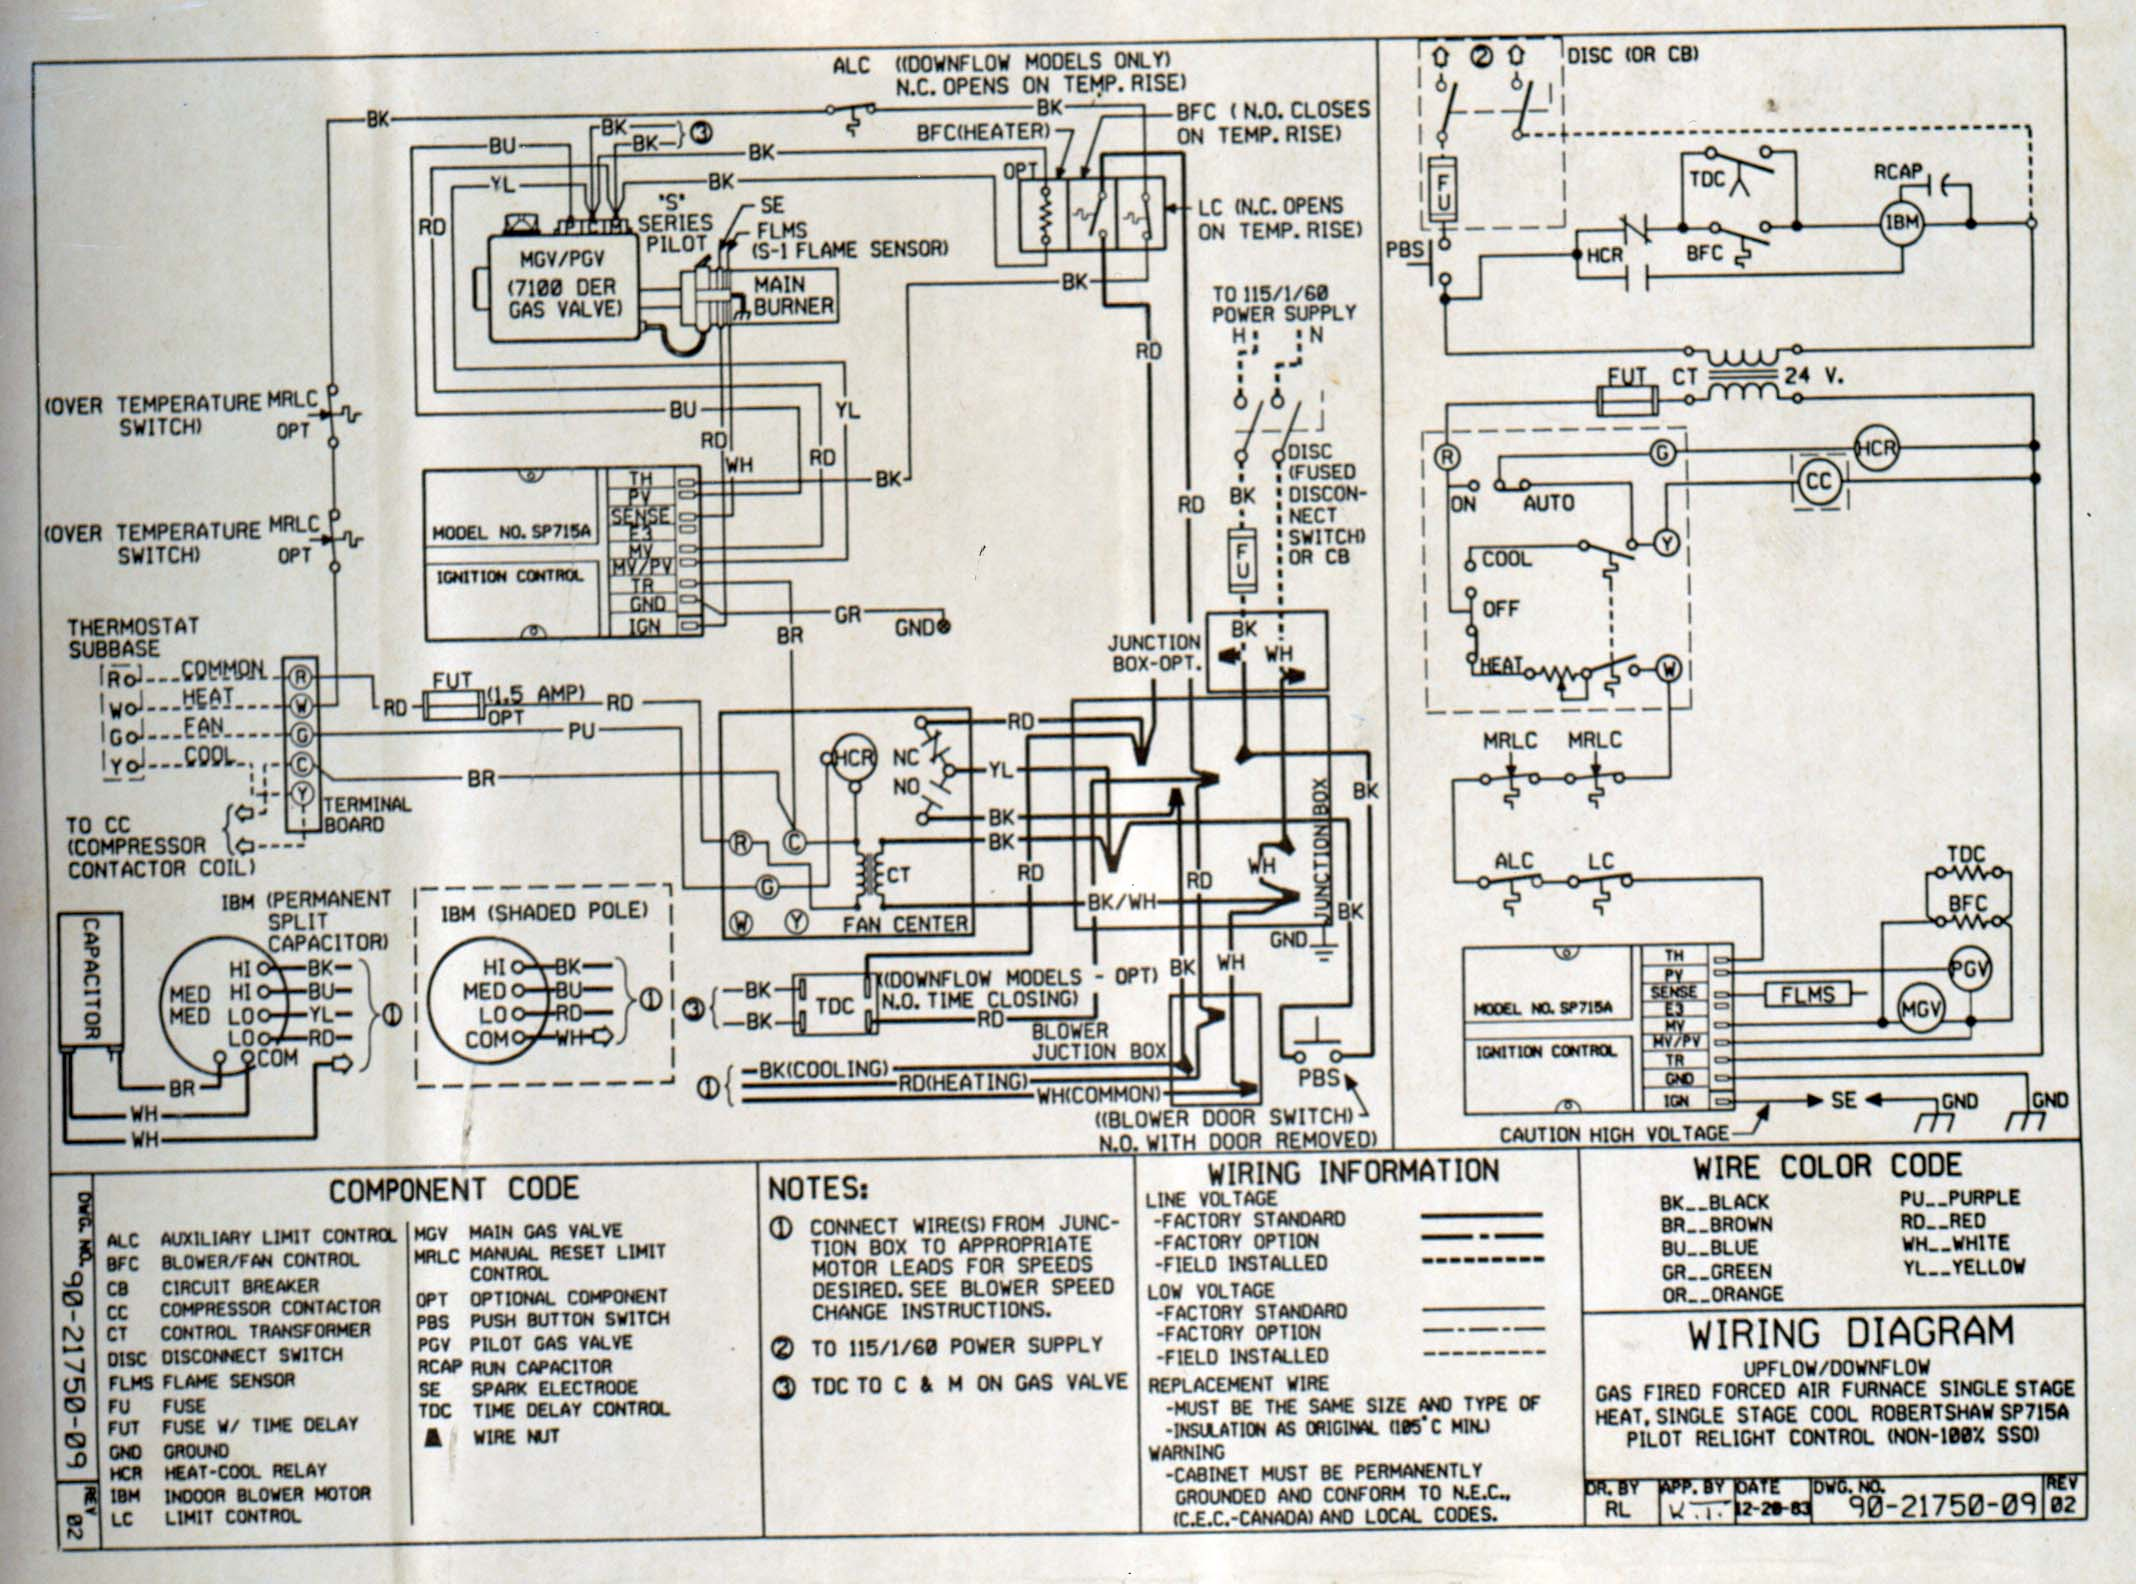 Wiring Diagram Older Furnace Heater Relay Opinions About 1992 Cadillac Eldorado Blower Fan Won T Stop Running After The Heating Cycle Is Done Rh Justanswer Com Motor Schematic